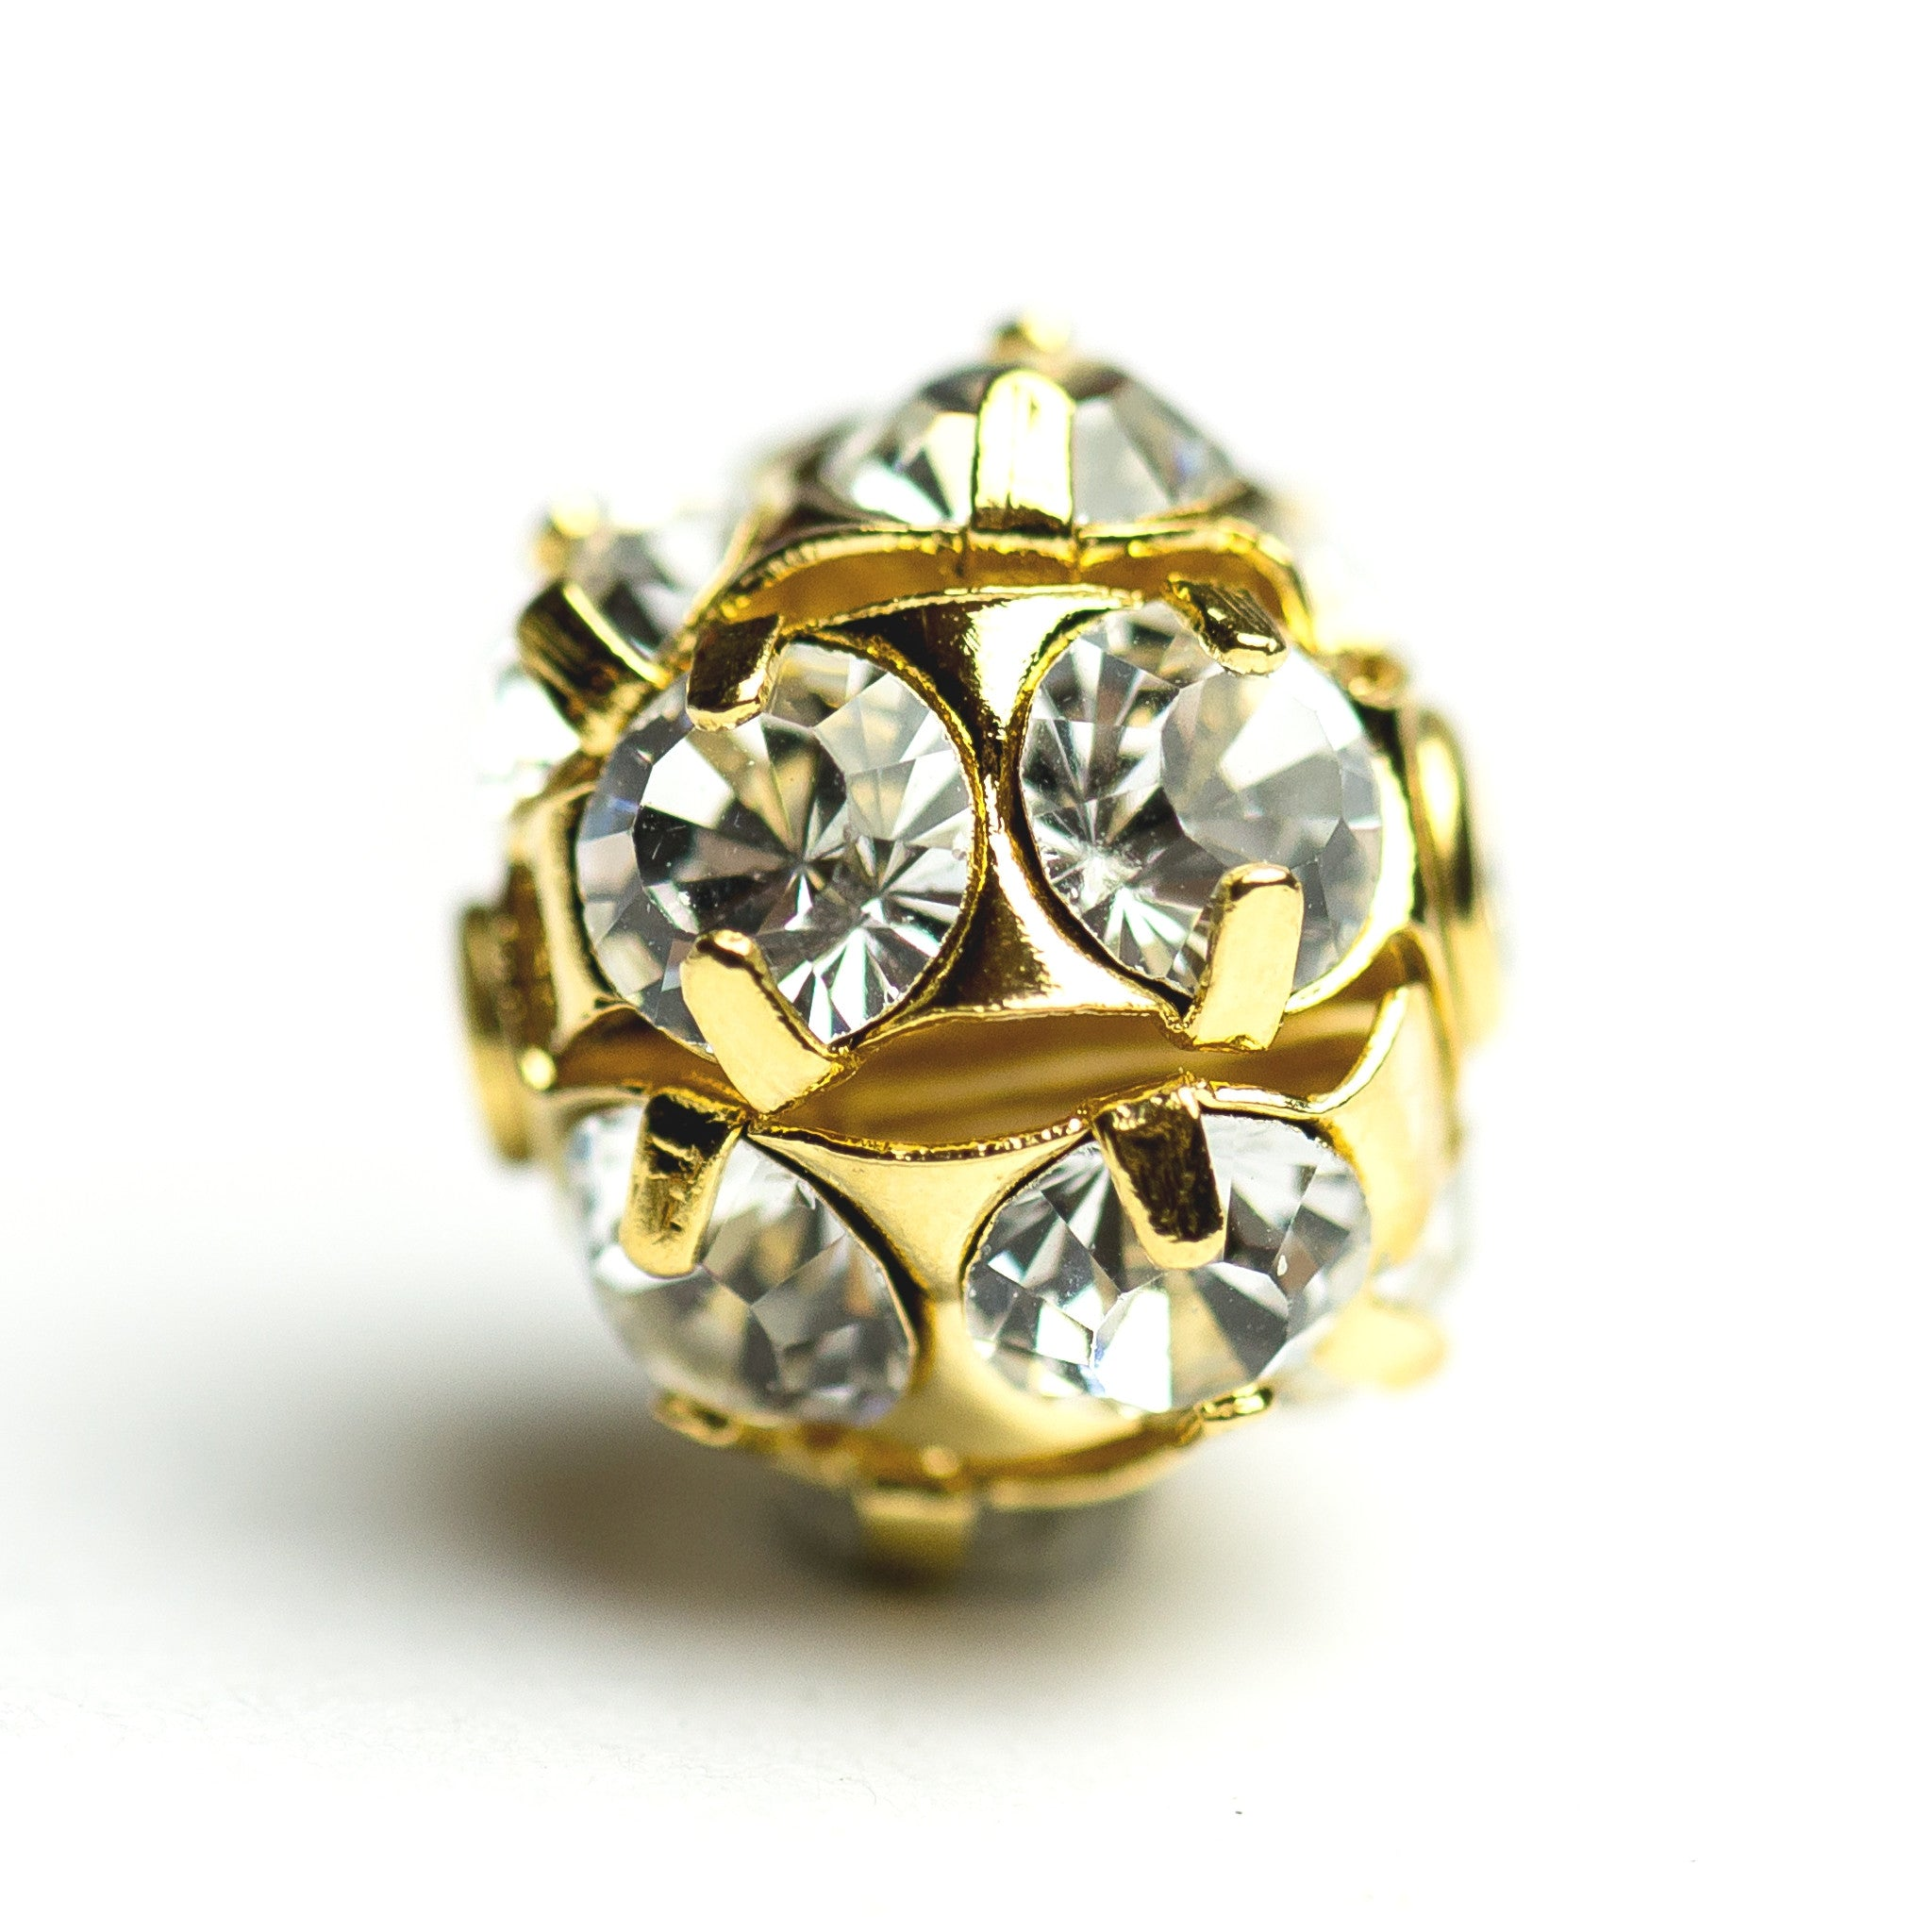 12MM Rhinestone Ball Crystal/Gold (2 pieces)